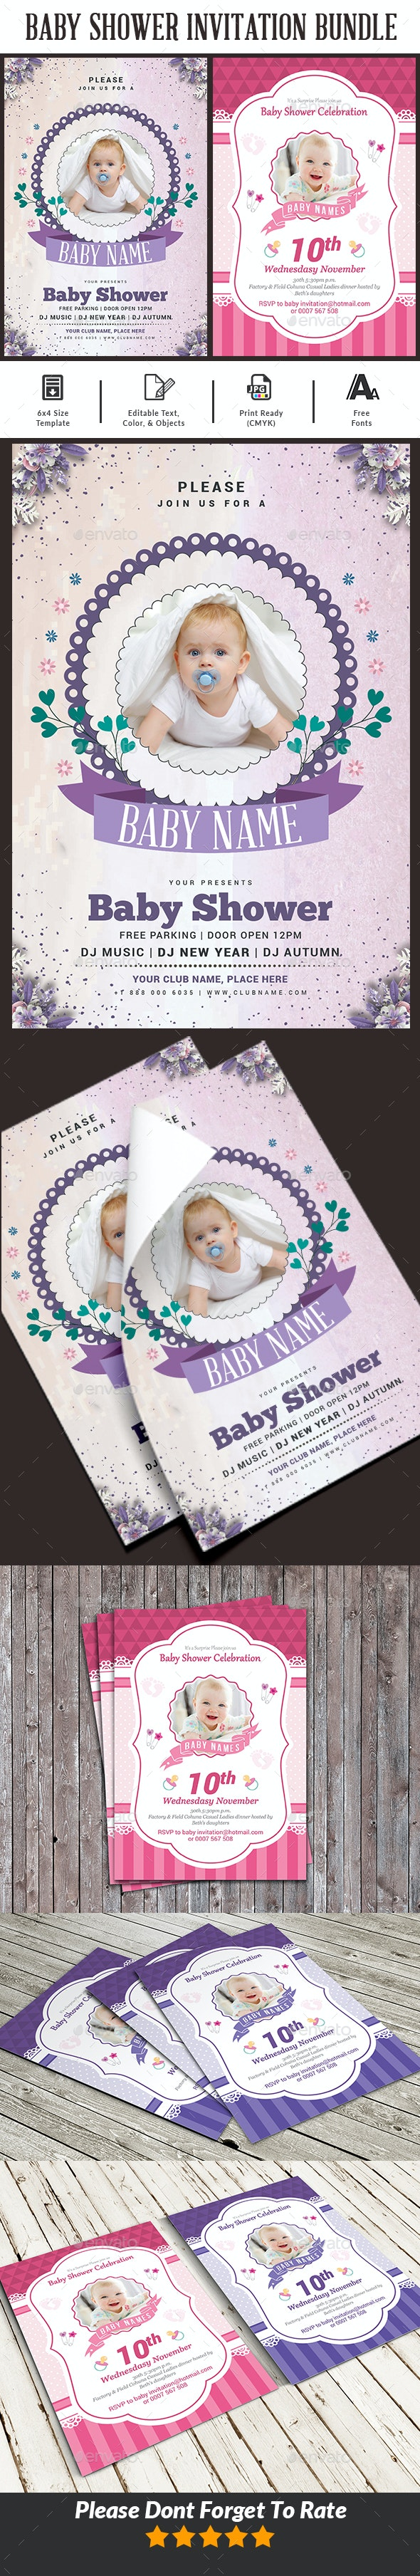 Baby Shower Invitation Bundle Templates - Cards & Invites Print Templates